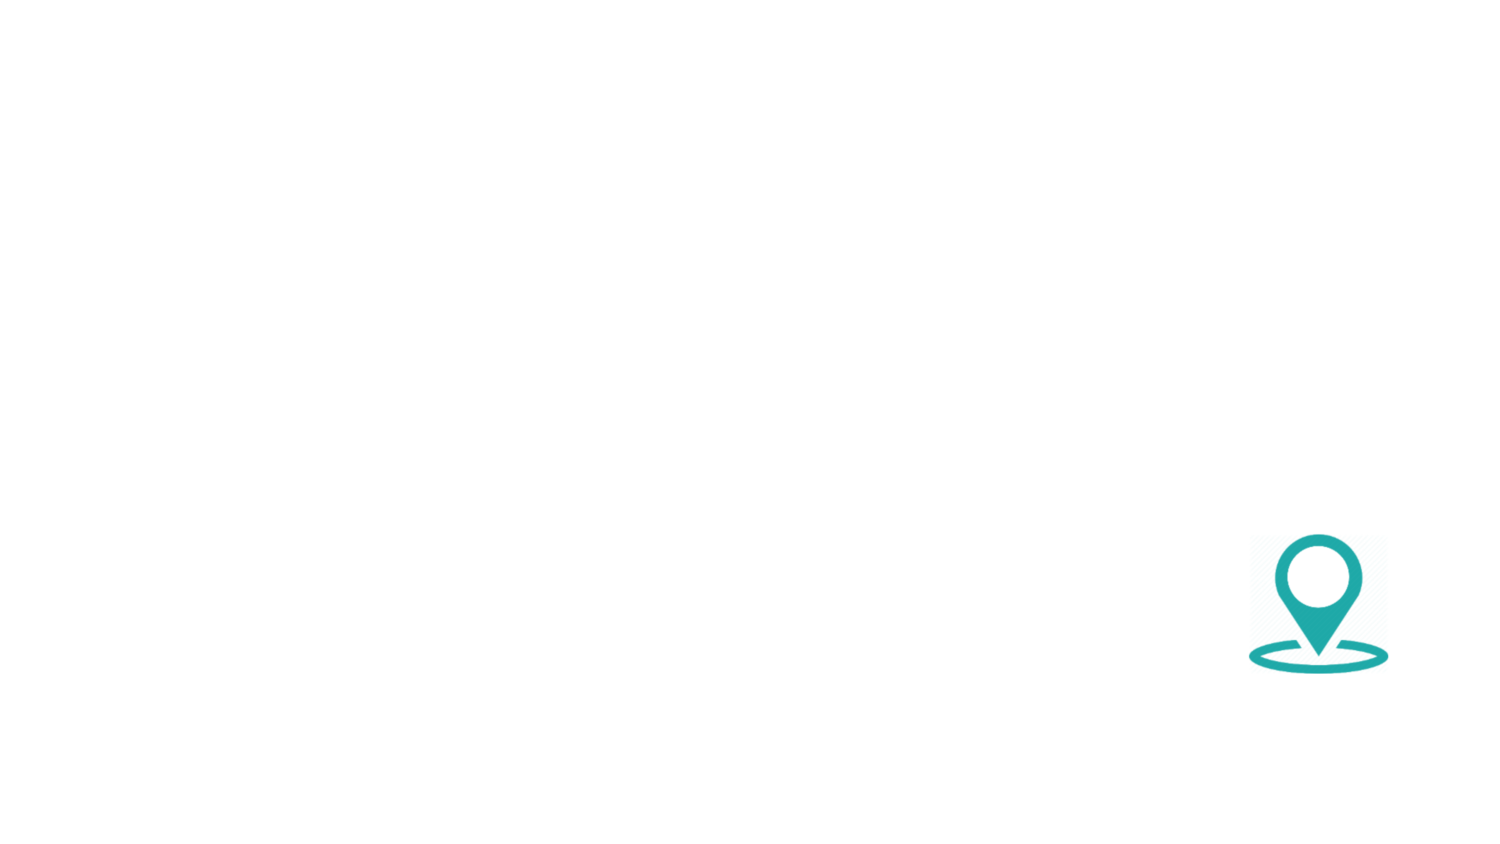 South Meridian Church of God